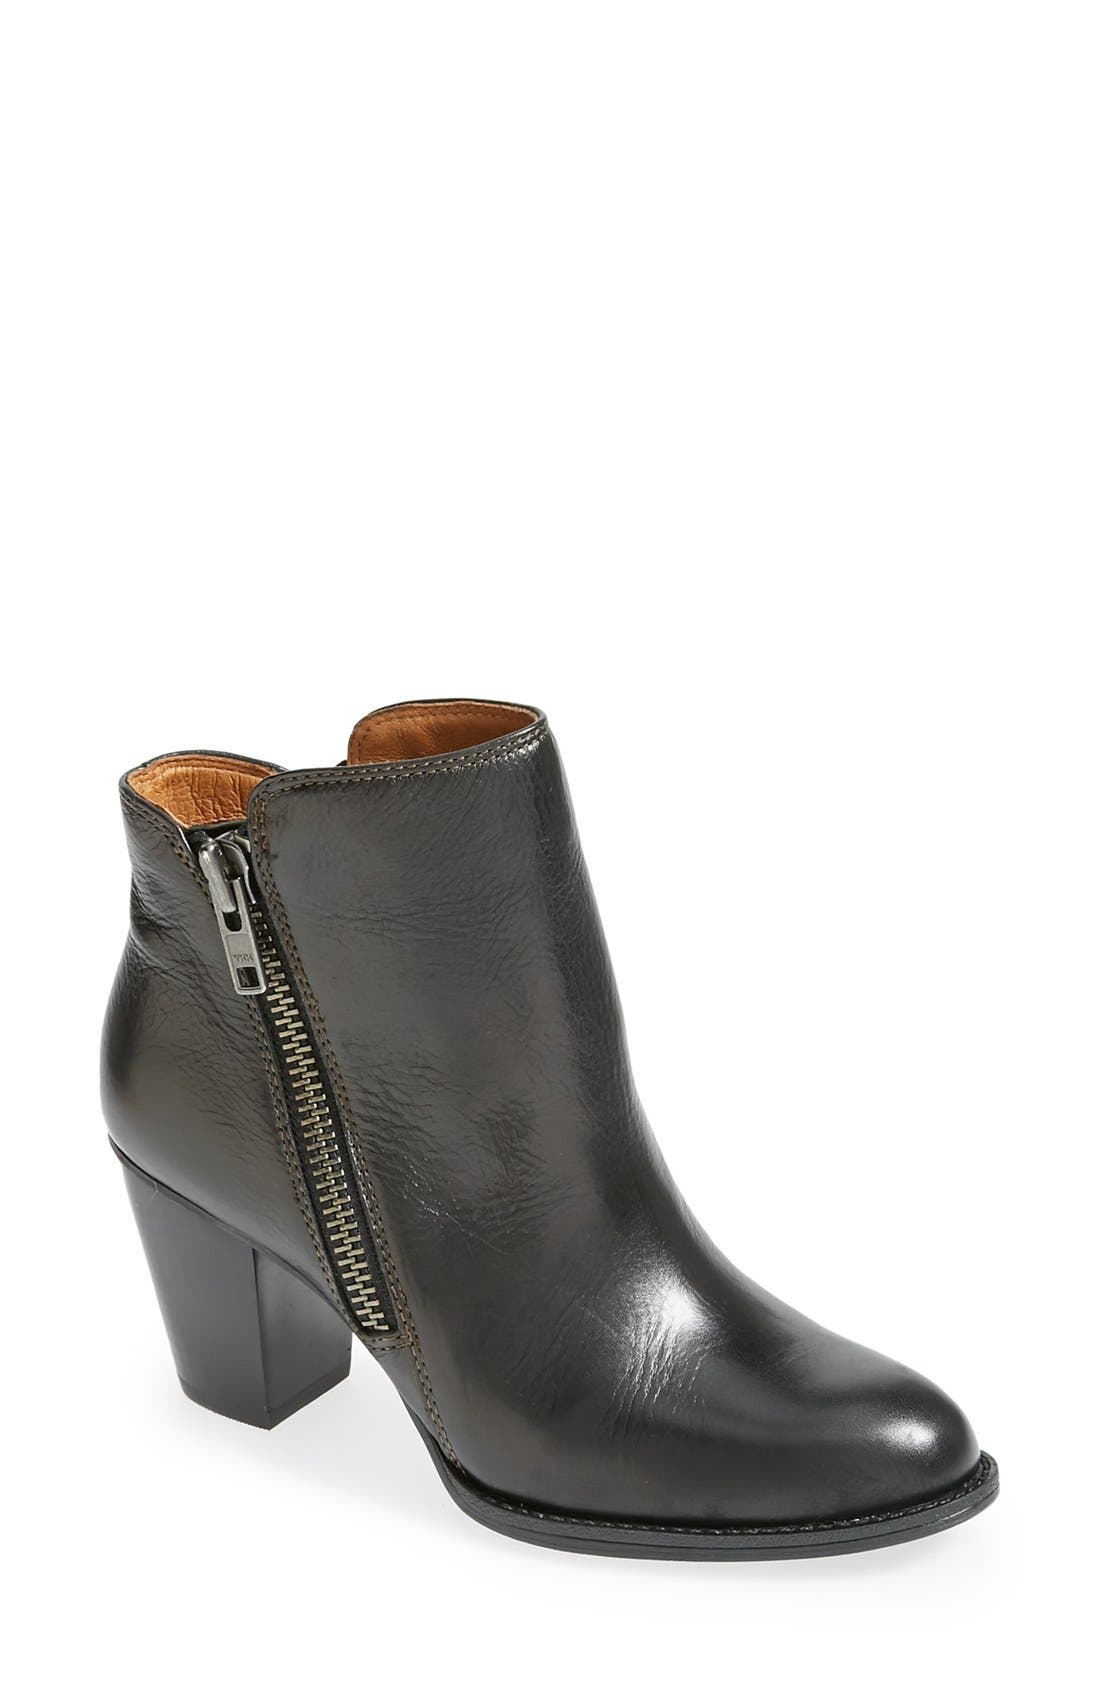 Main Image - Söfft 'Wera' Leather Bootie (Women)